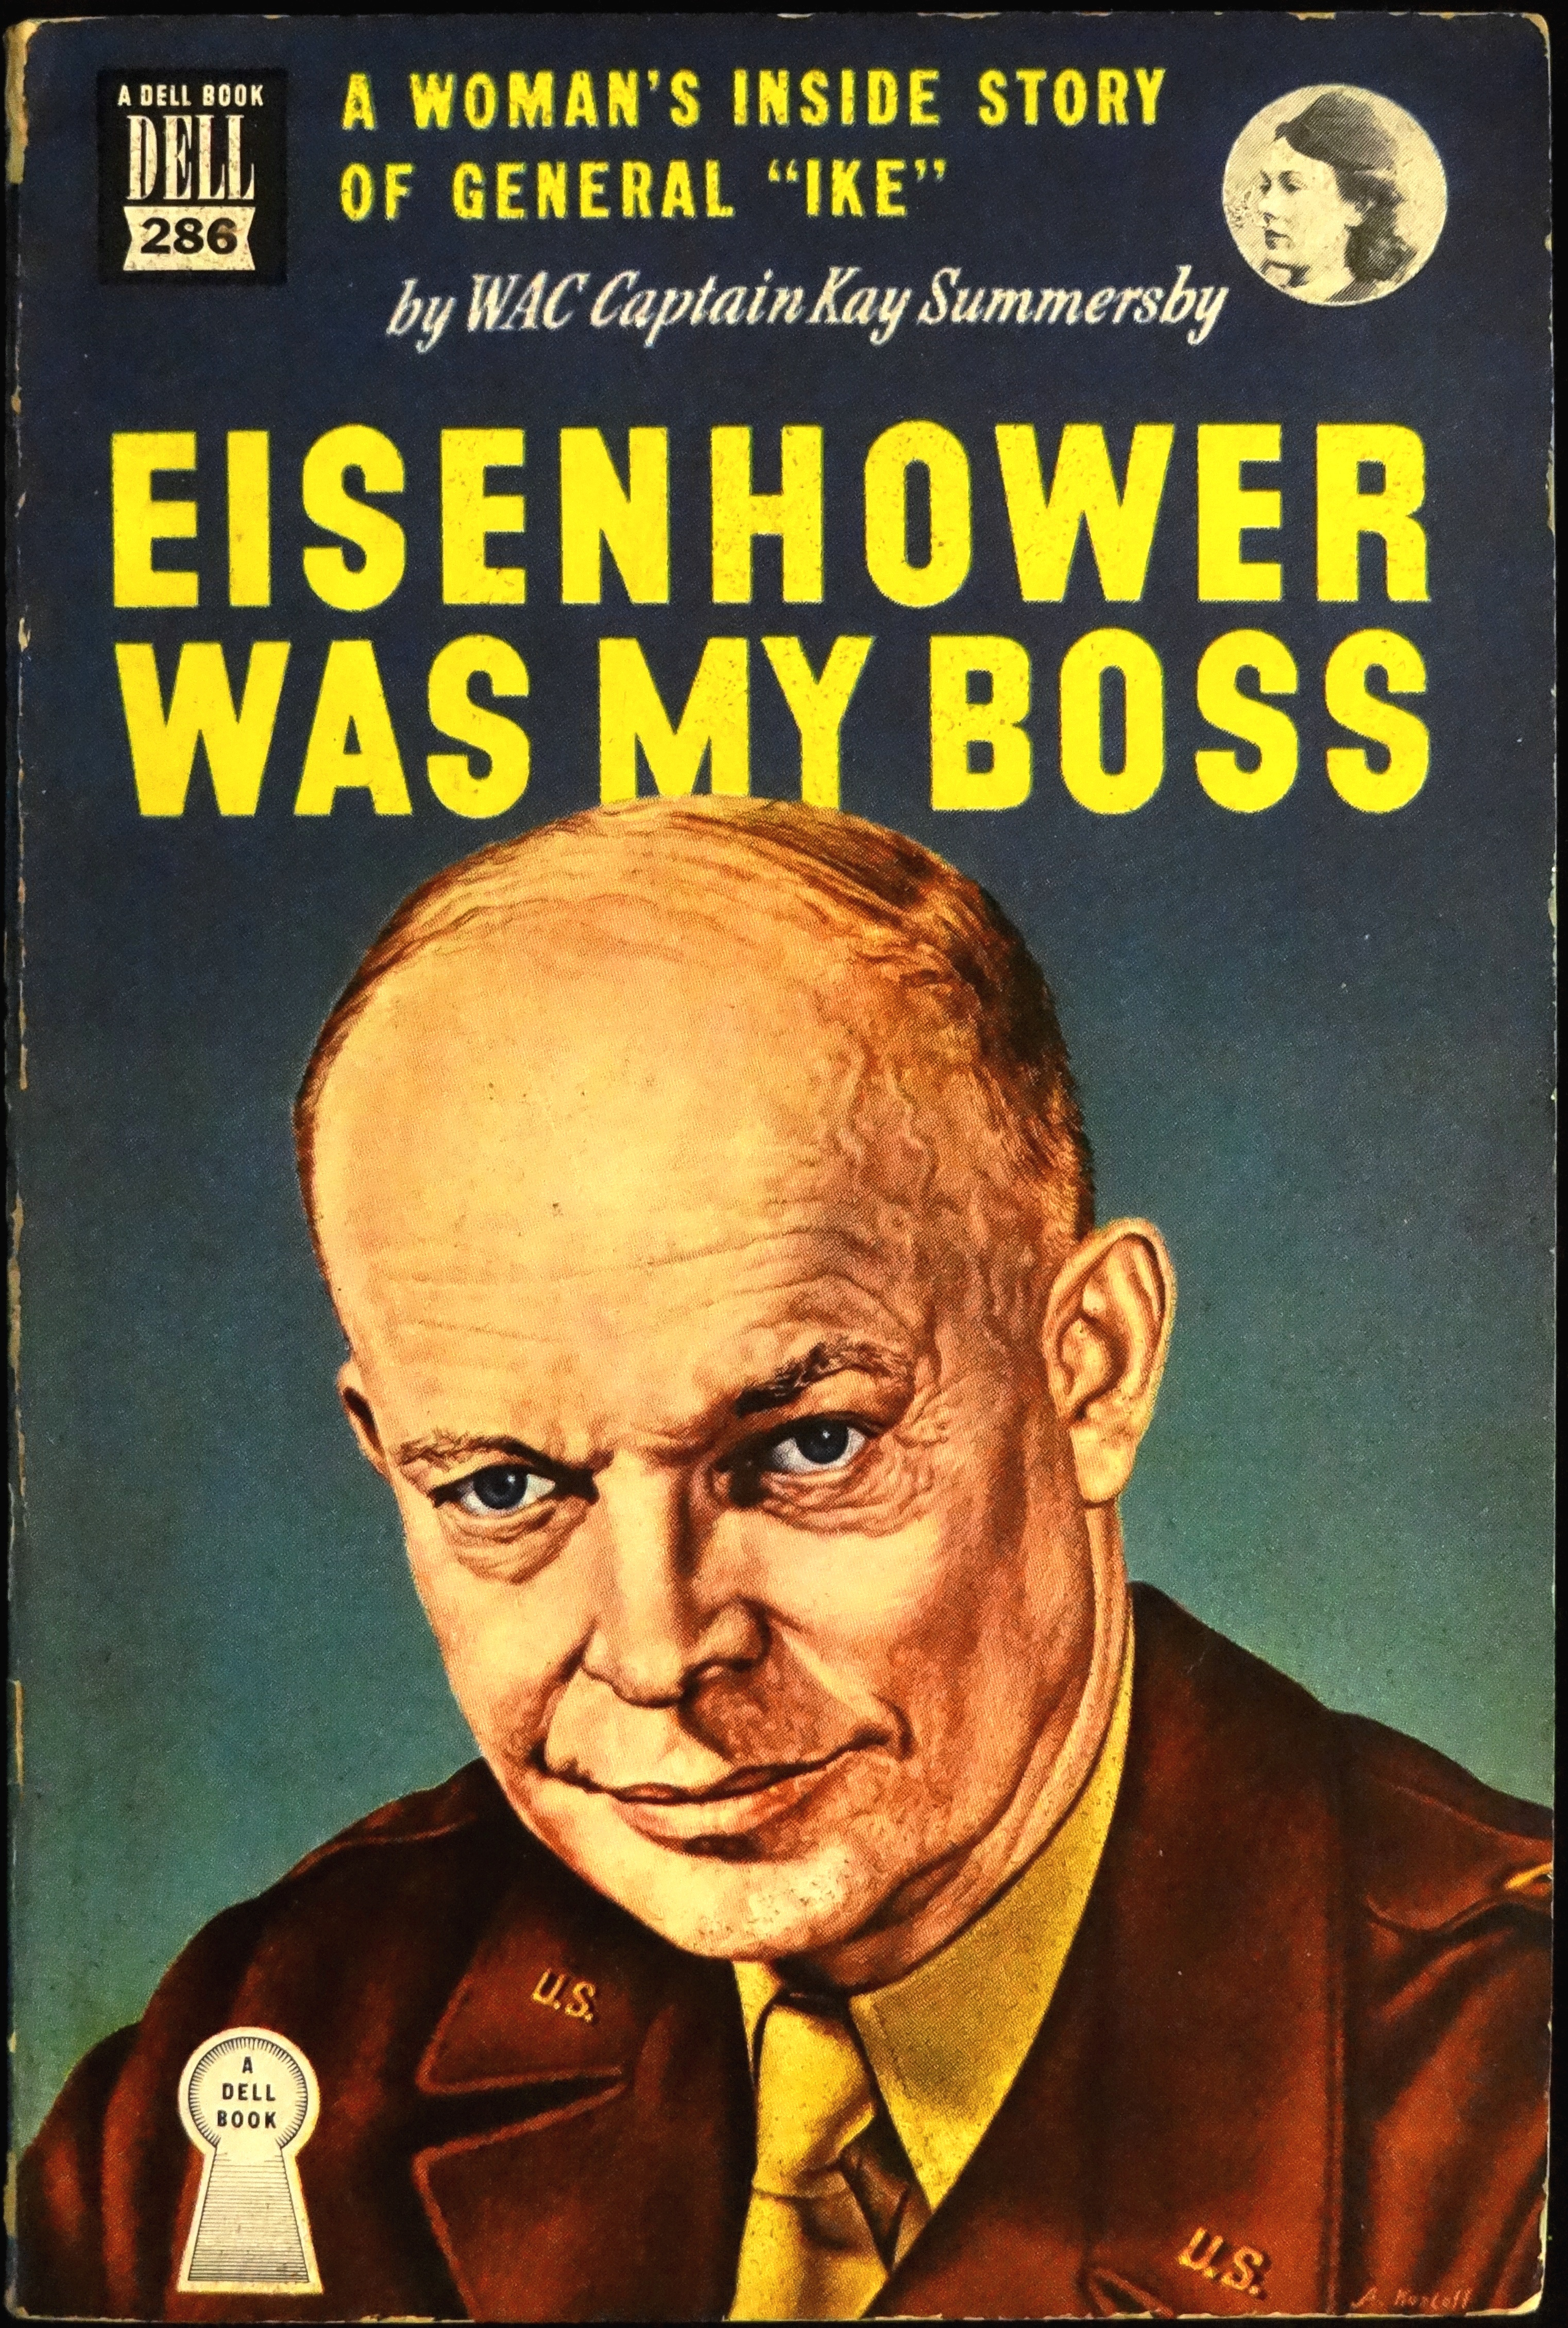 'Eisenhower Was My Boss' - by Captain Kay Summersby with Frank Kearns - Cover art by Alexander T. Kozloff - Dell Mapback No. 286 - 1949